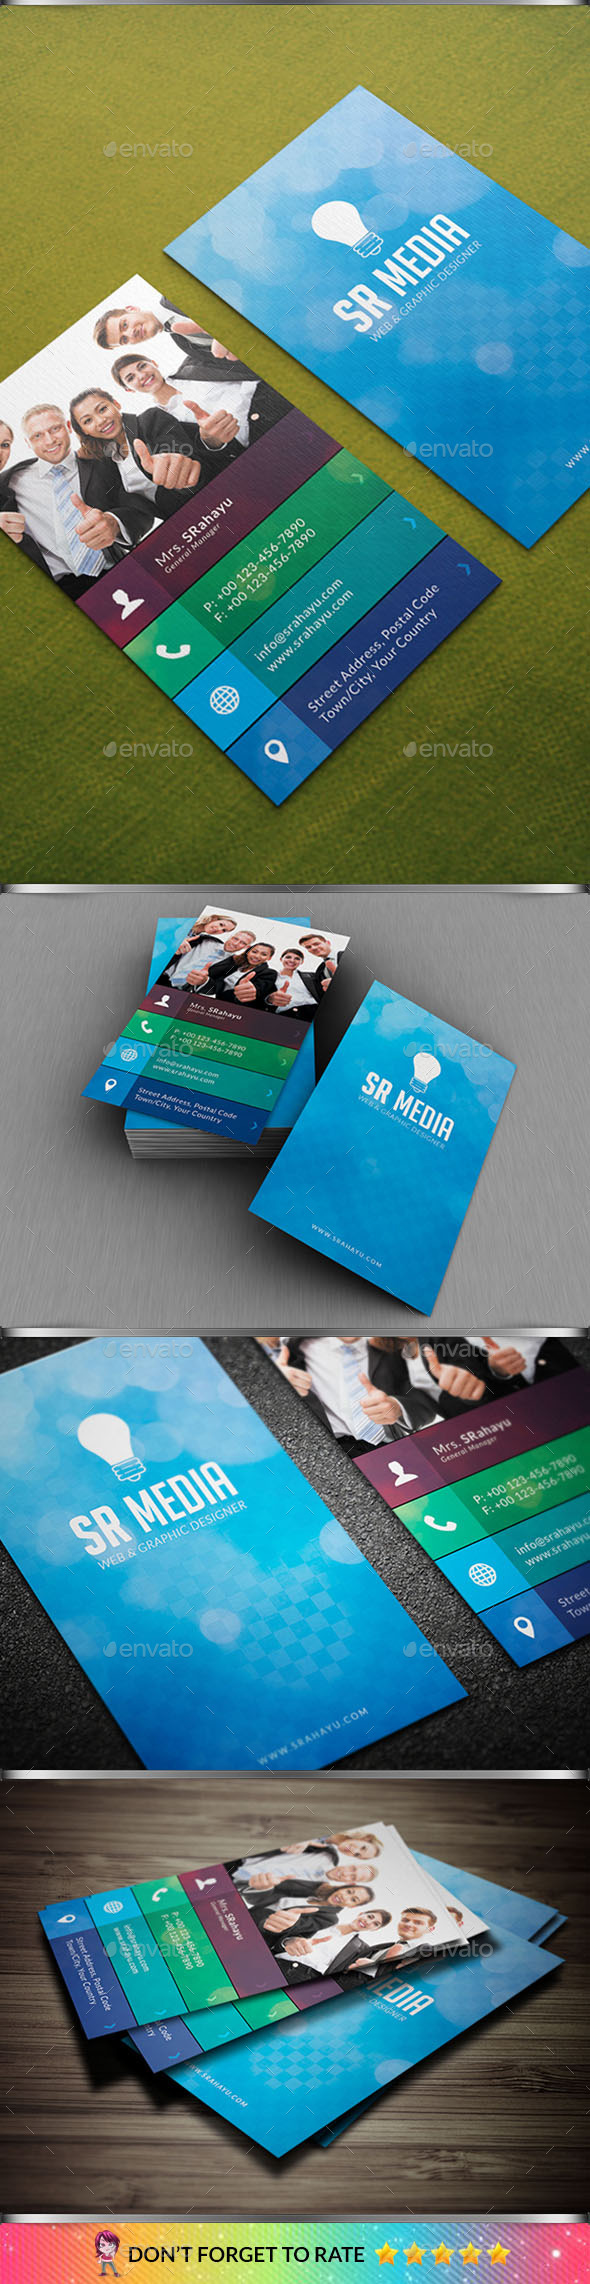 GraphicRiver Corporate Business Card Vol 02 10185988